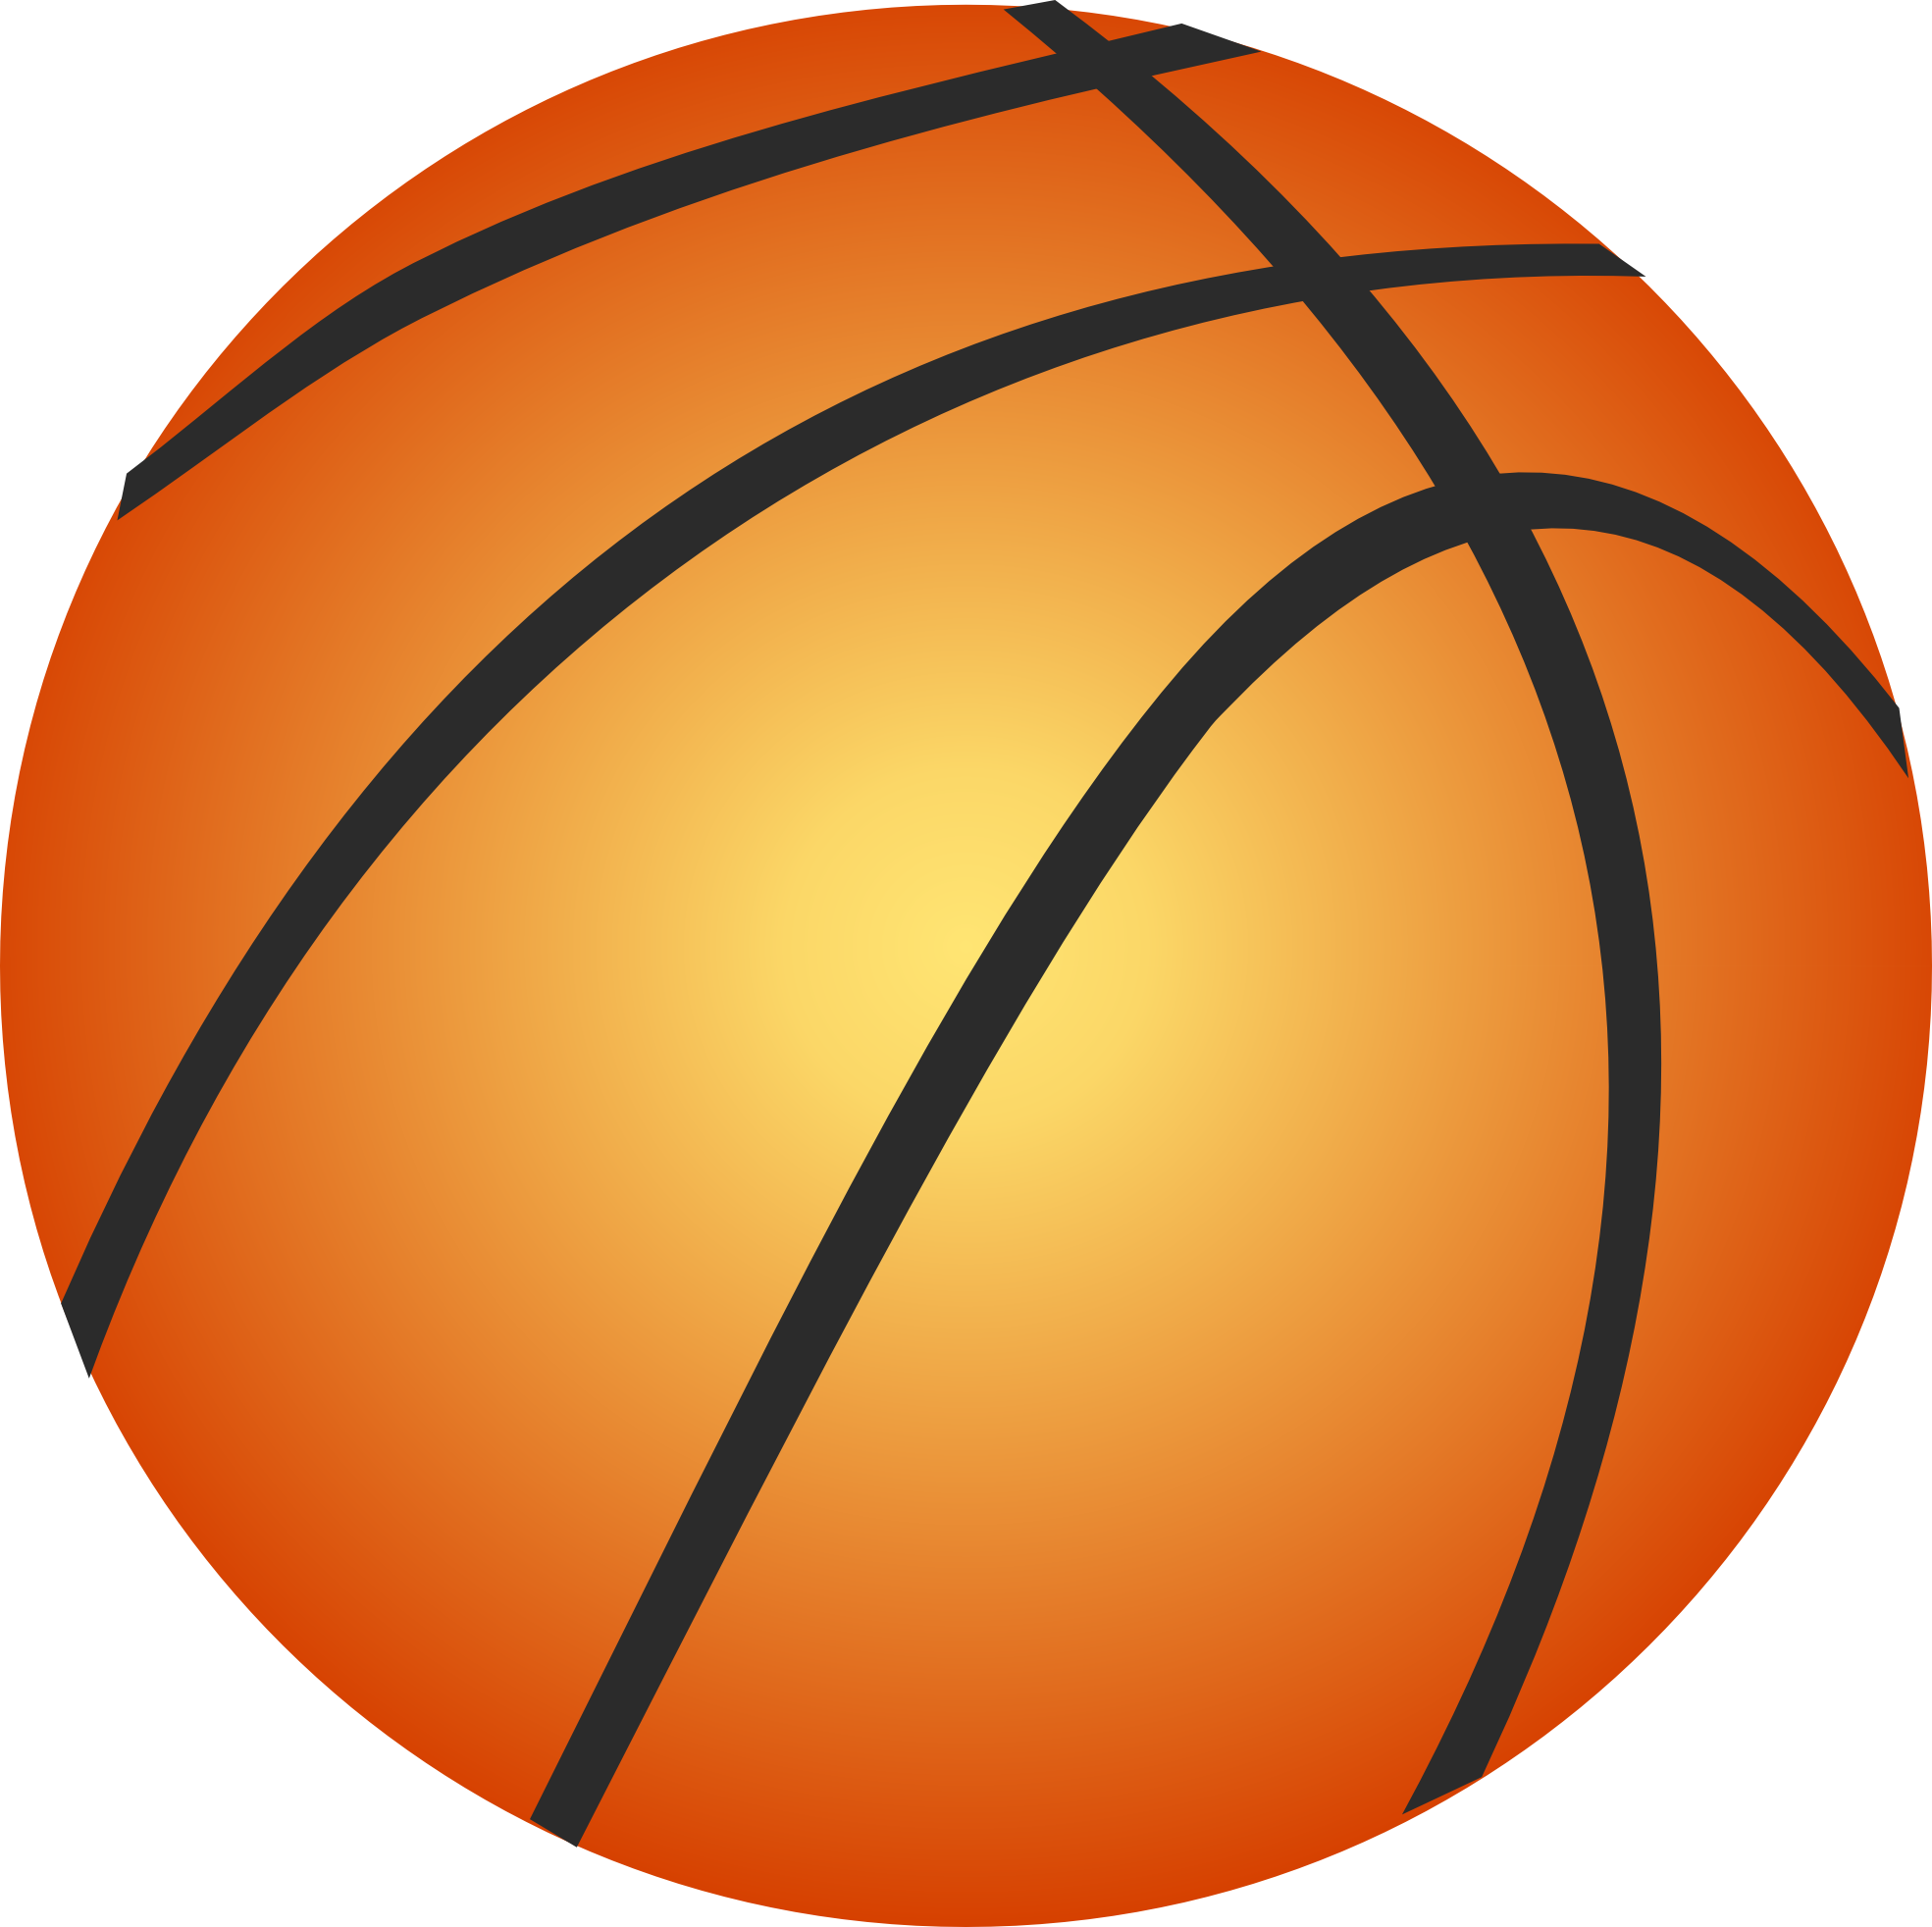 basketball court clipart blac - Basketball Clip Art